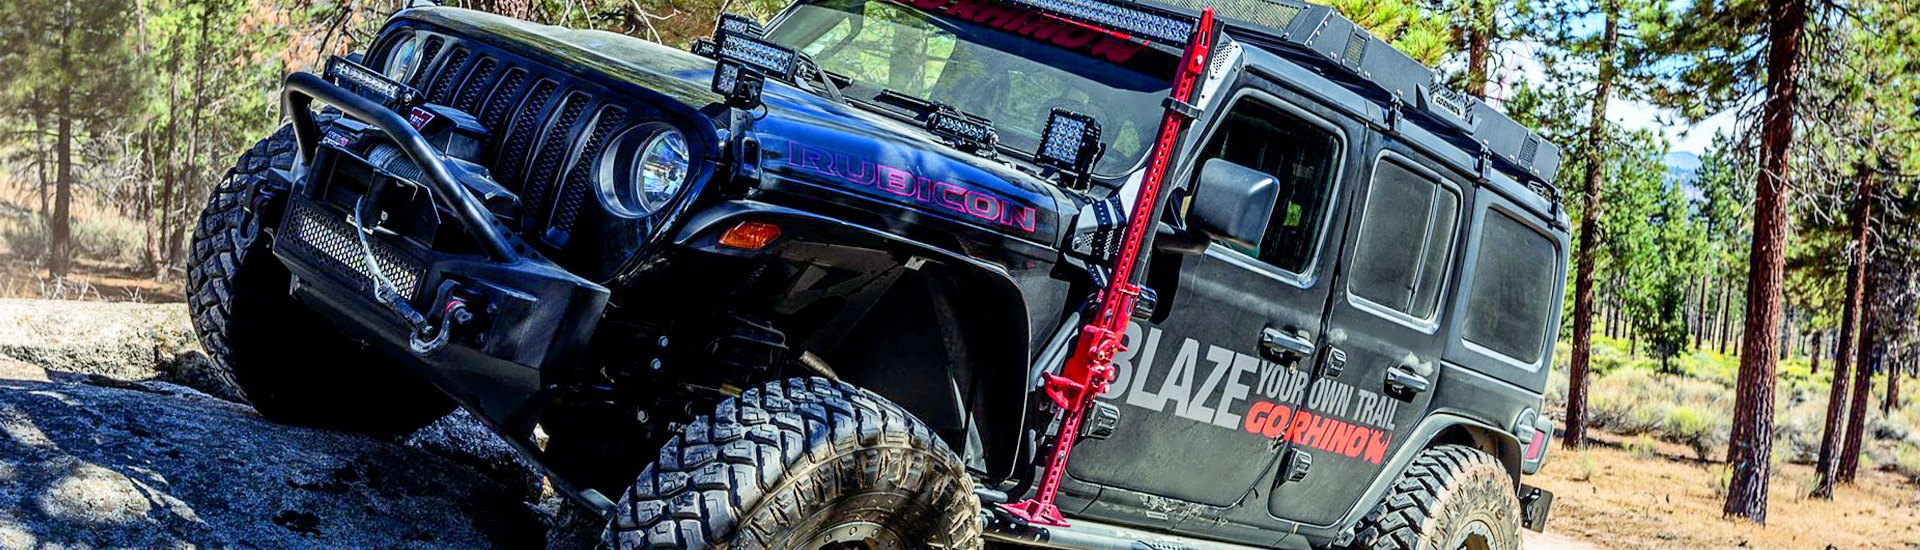 New Exterior Jack Mount by Go Rhino for Jeep Wrangler & Gladiator